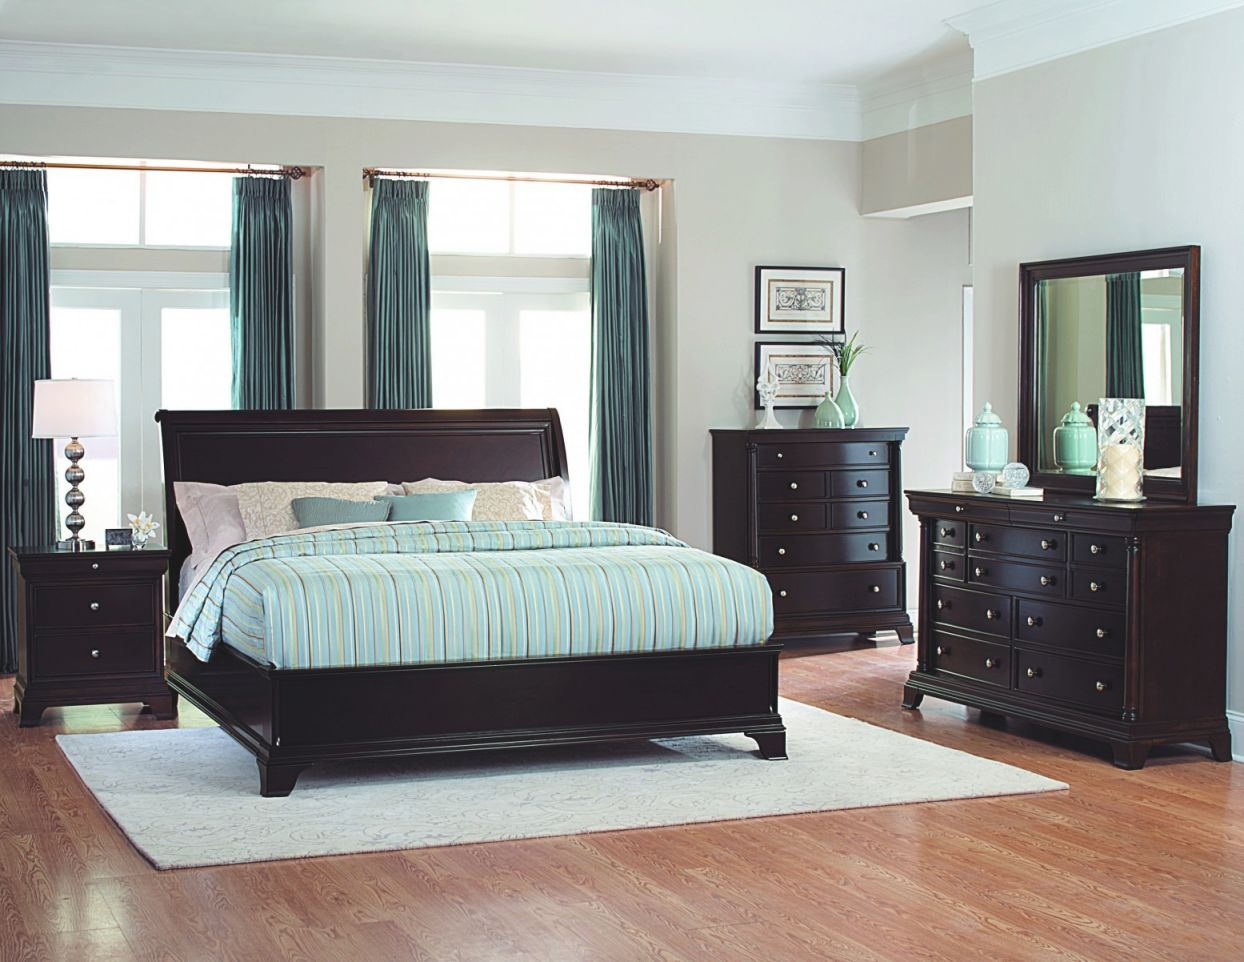 Inglewood 3-Piece Queen Size Low Profile Bedroom Set throughout Luxury Bedroom Set Queen Size